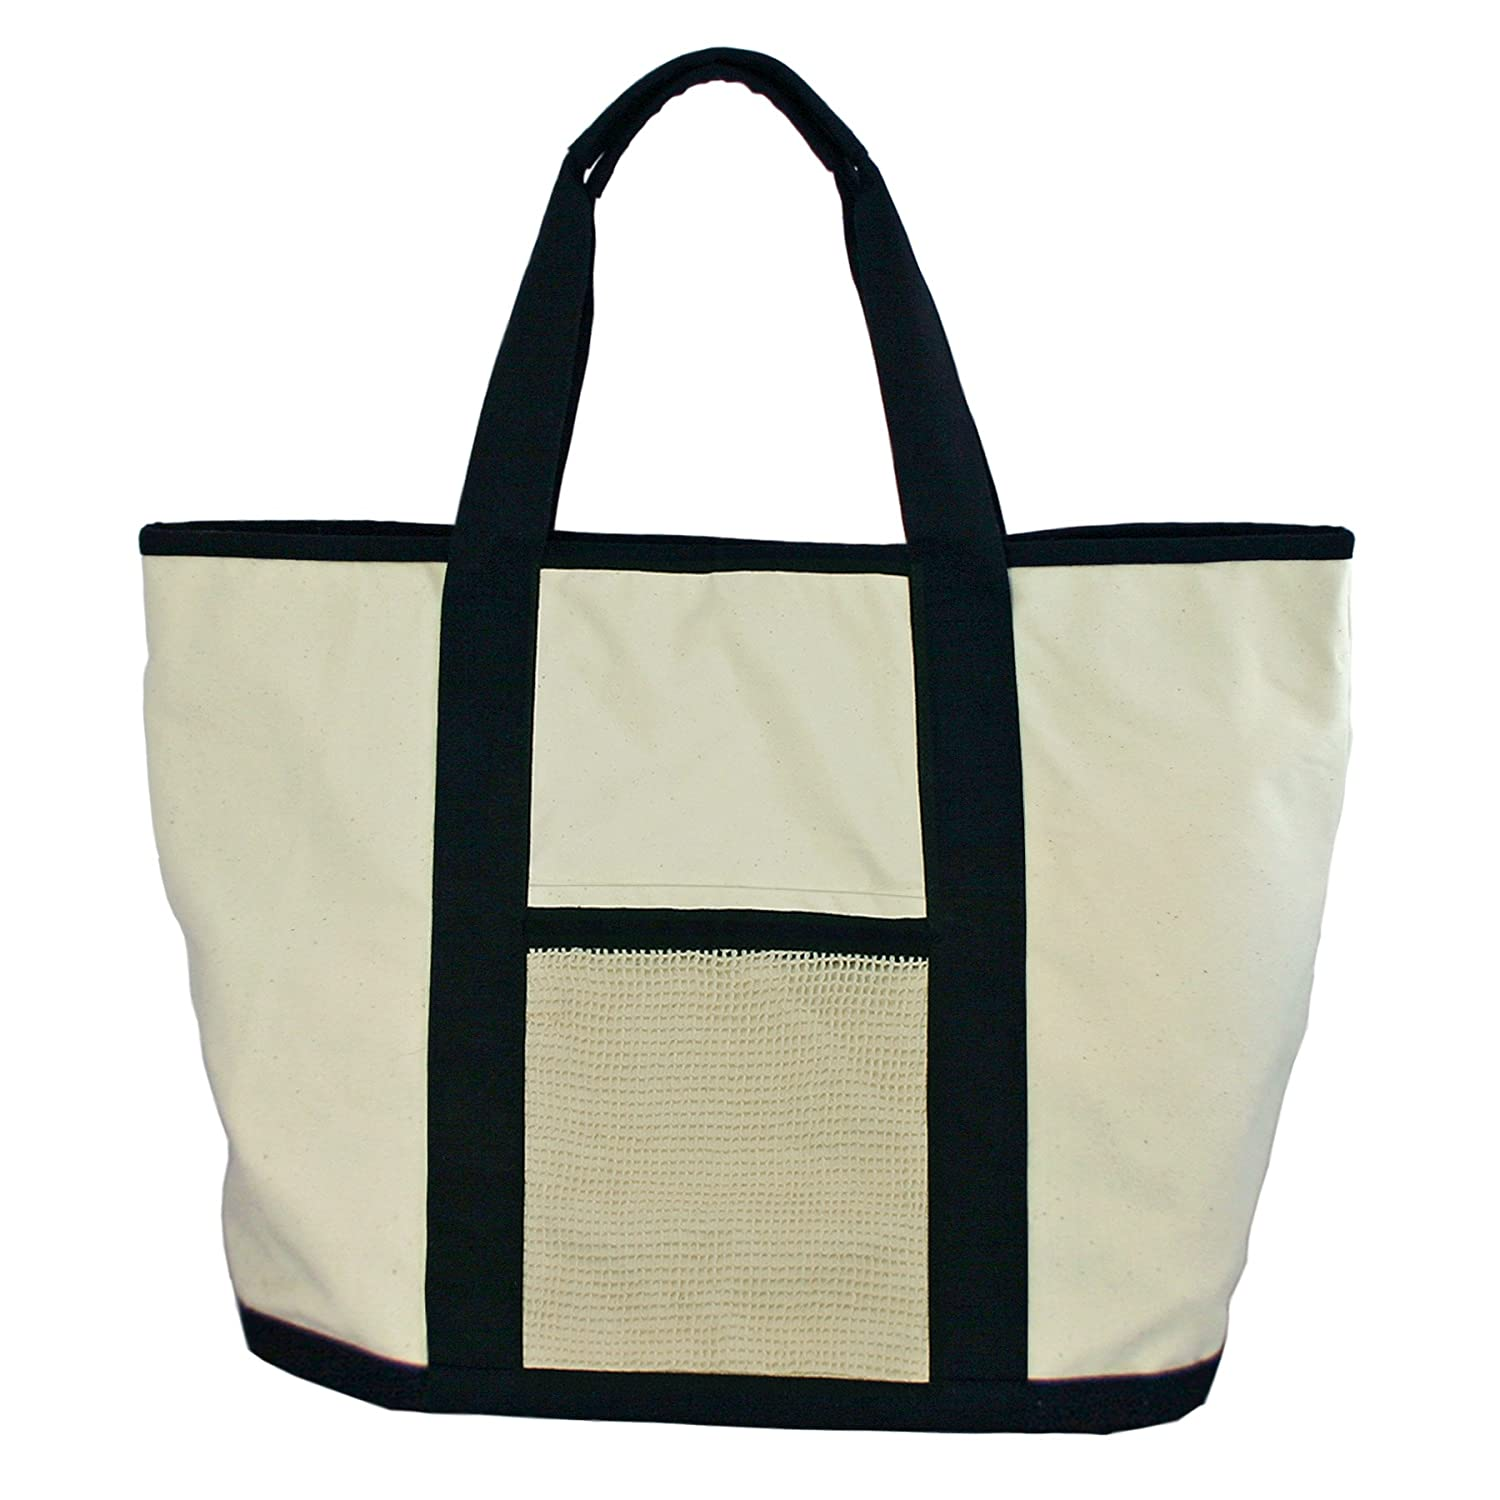 Simple Ecology Organic Cotton Super Duty Canvas Tote and Grocery Bag - Natural/Black AX-AY-ABHI-64043